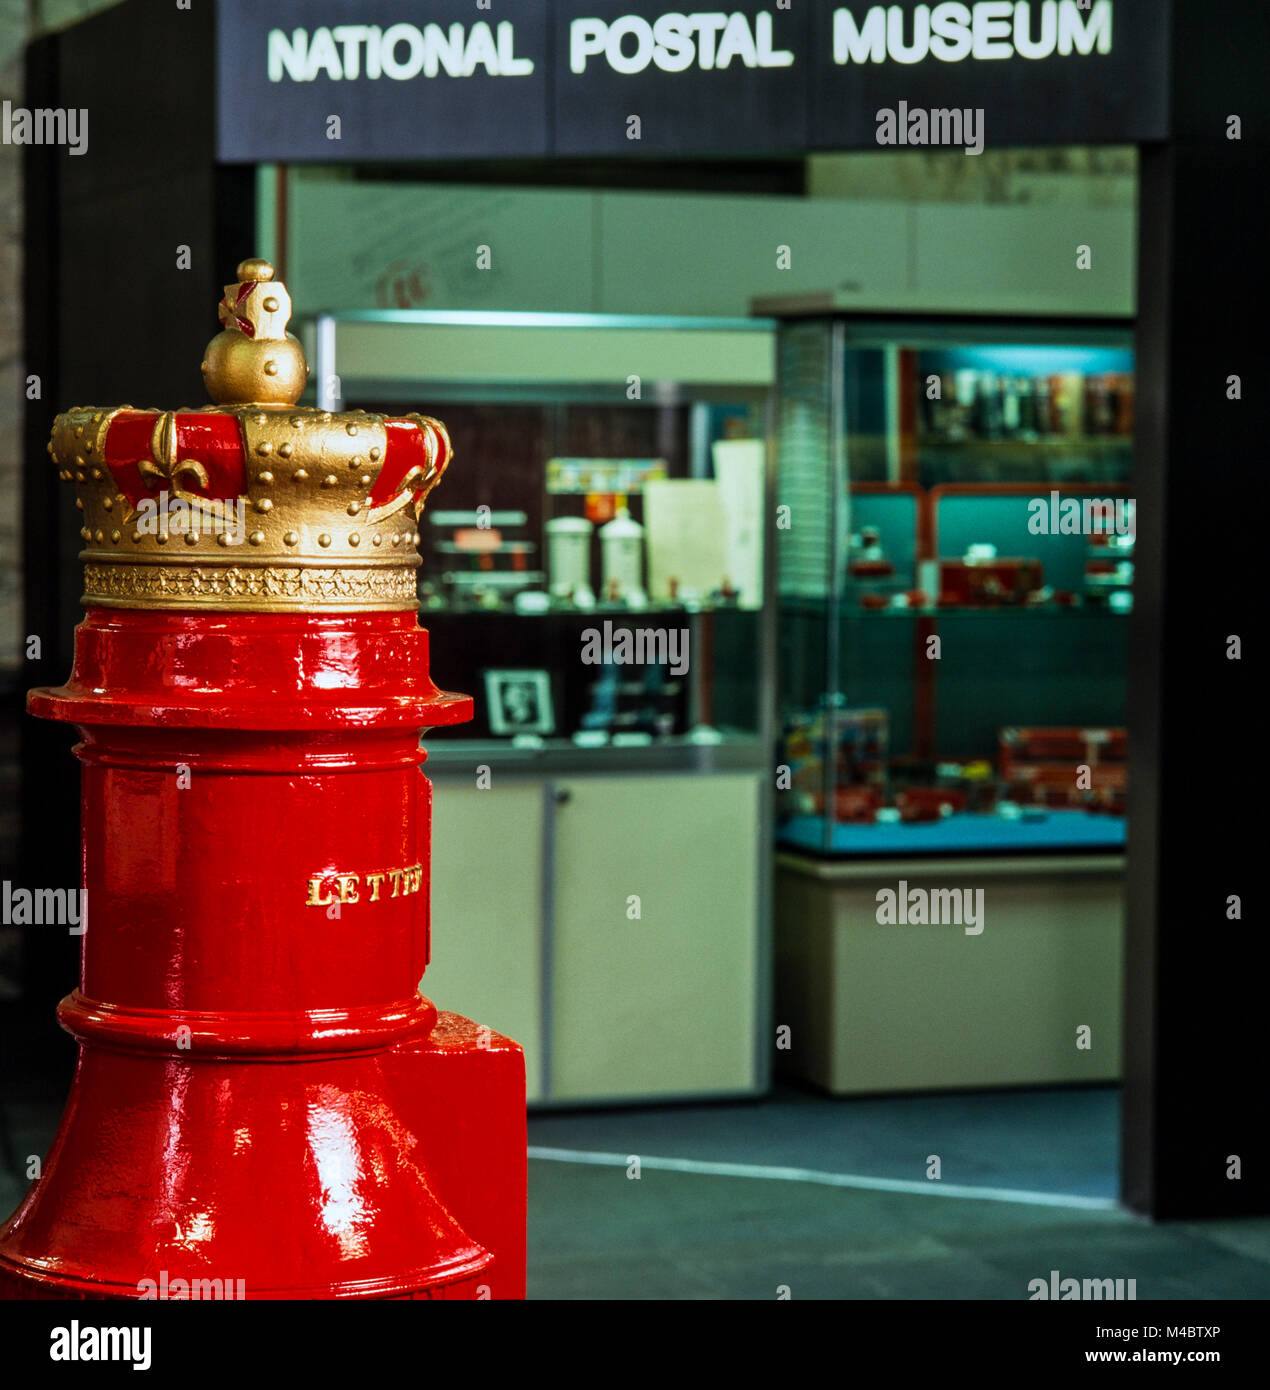 National Postal Museum, King Edward Street, London, original postbox for Scottish region used from 1856,  archival - Stock Image